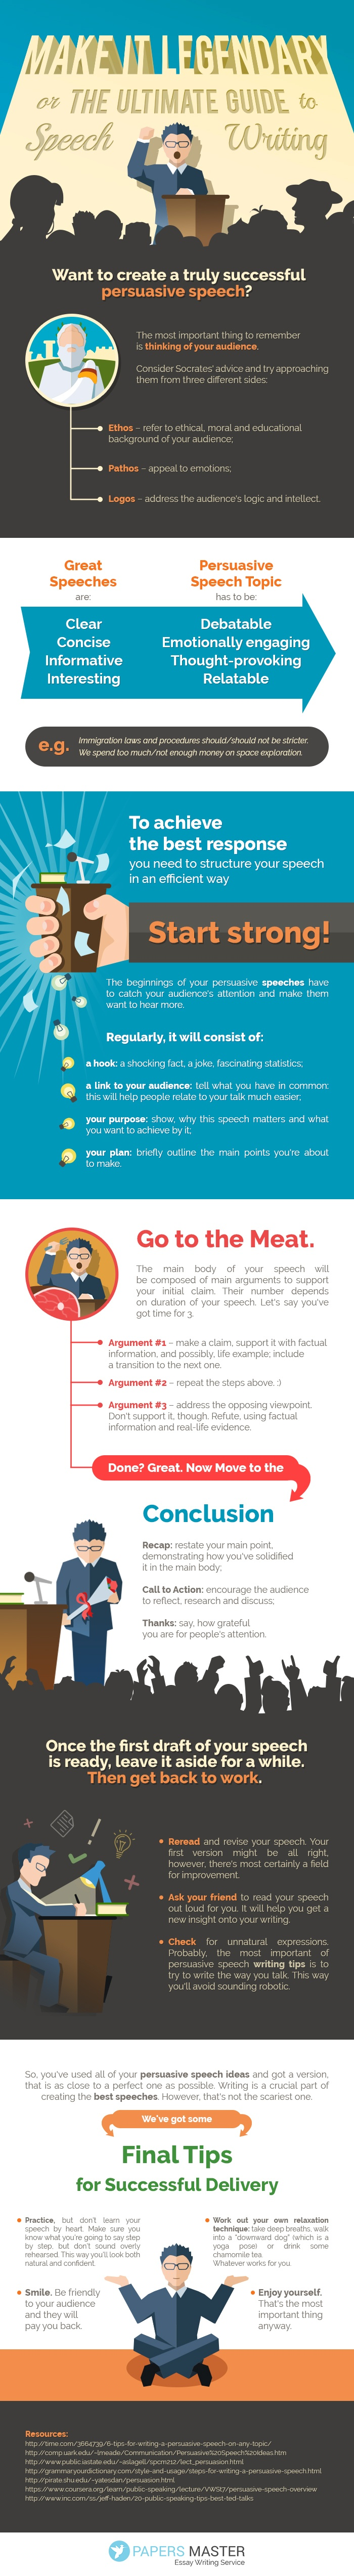 A Simple Guide to Writing a Memorable Speech [infographic]